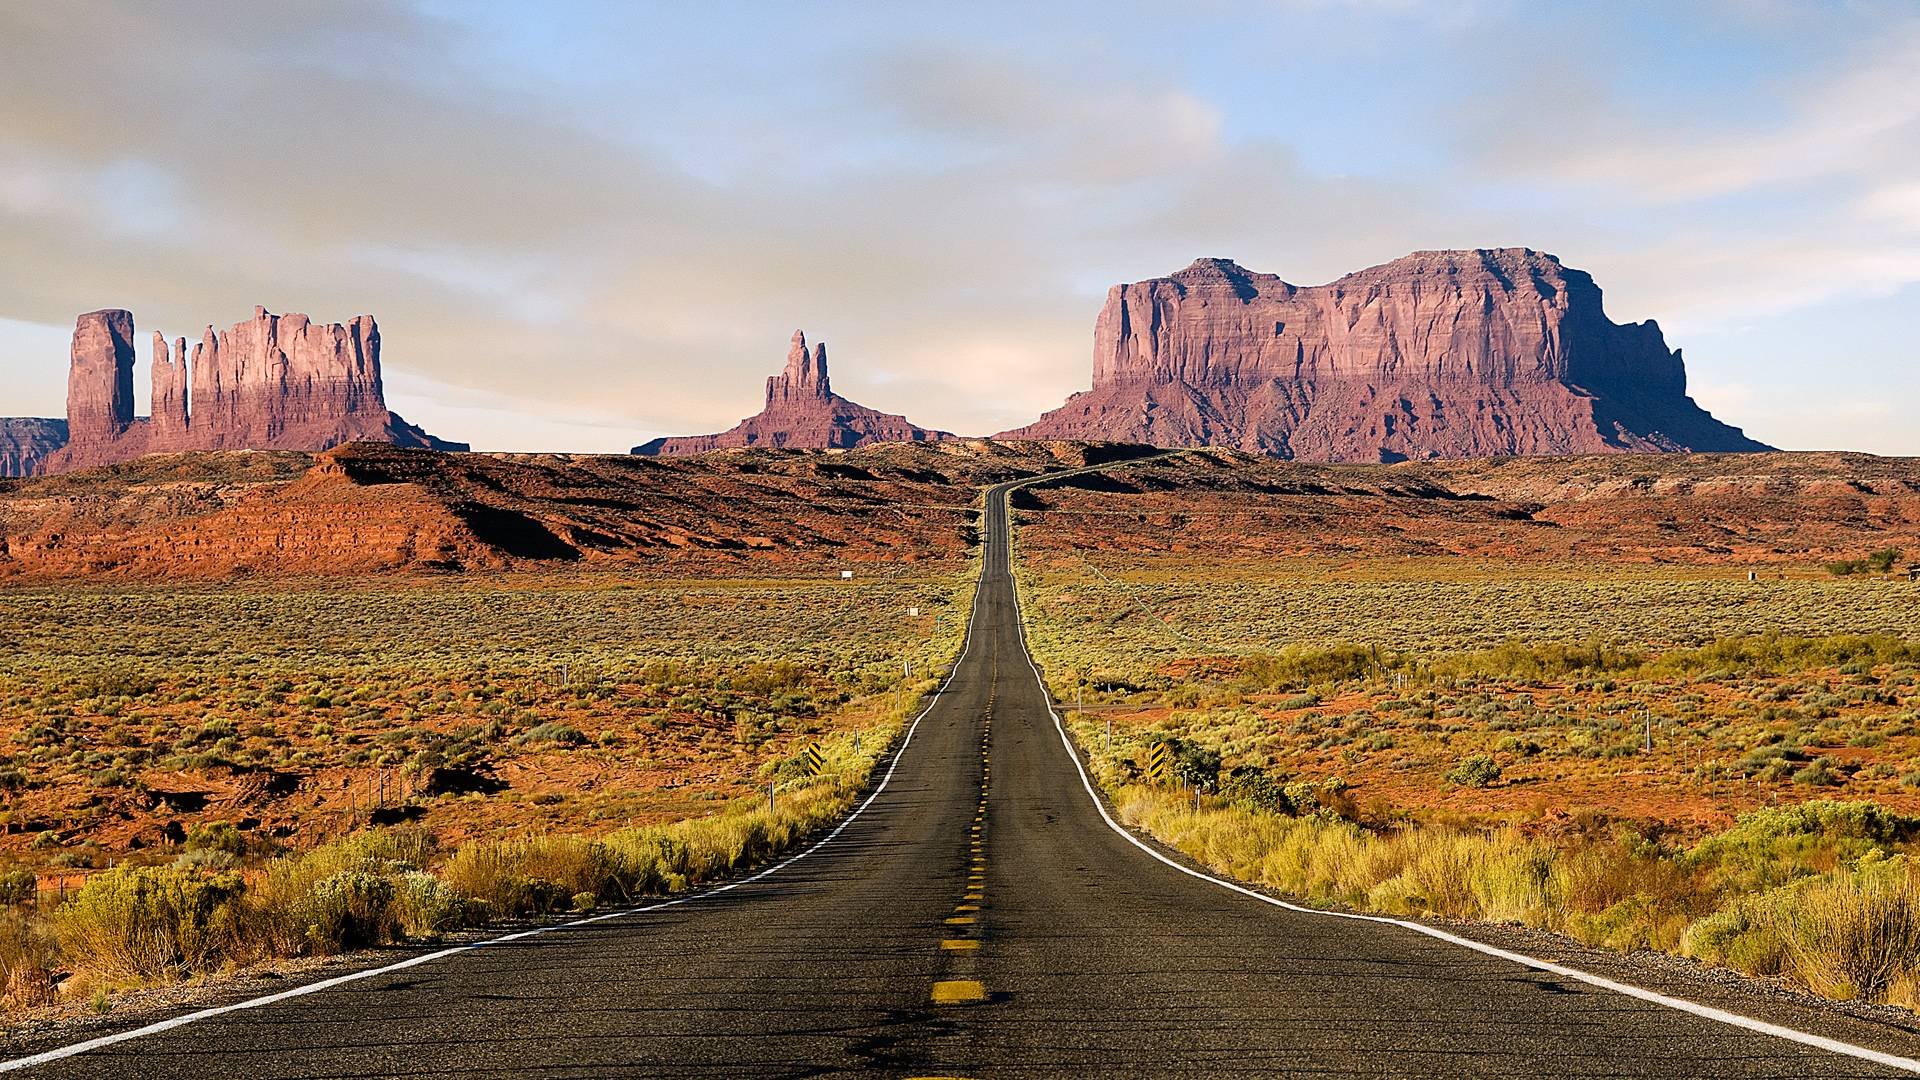 Route 66 Desktop Wallpapers Top Free Route 66 Desktop